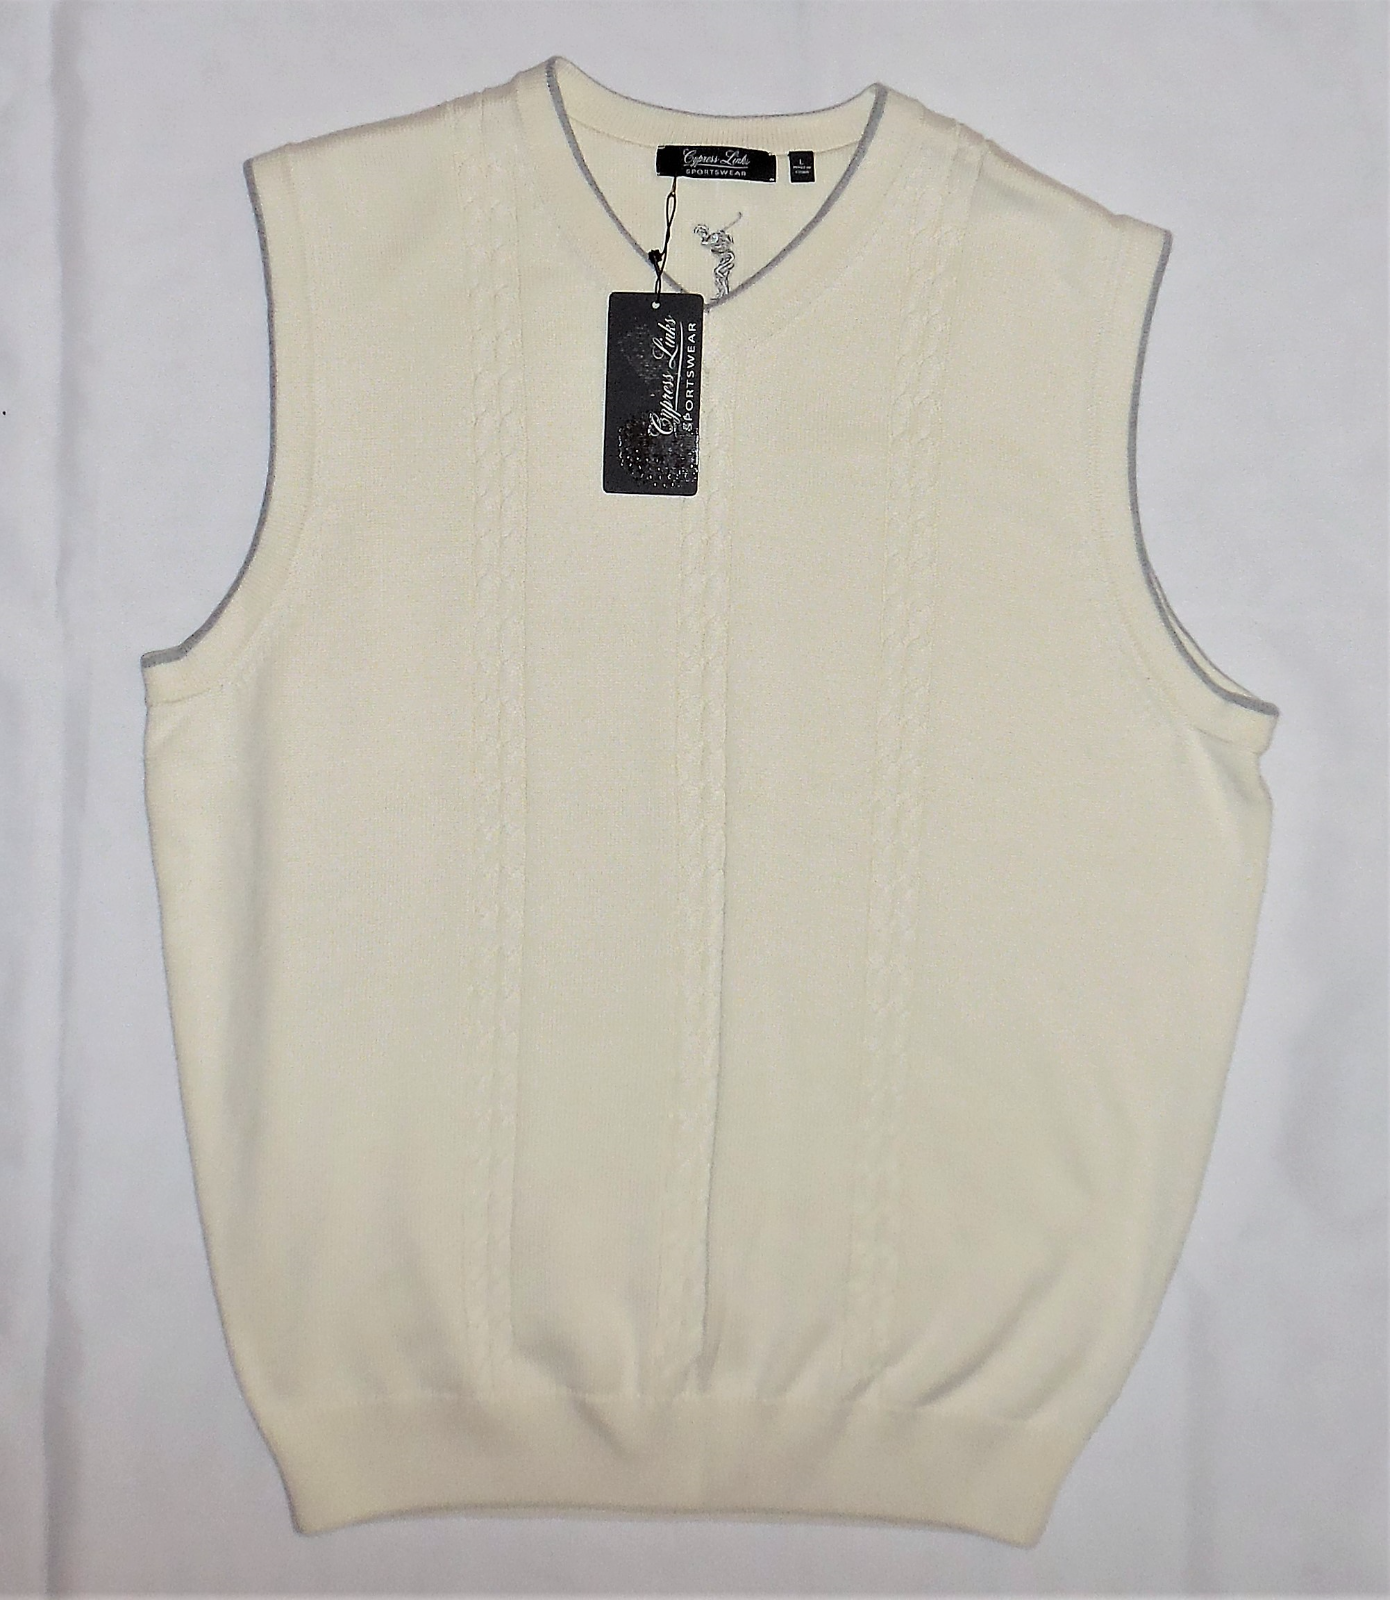 CYPRESS LINKS Cable Knit Cream Sweater Vest Large Golf Attire Sportswear LARGE